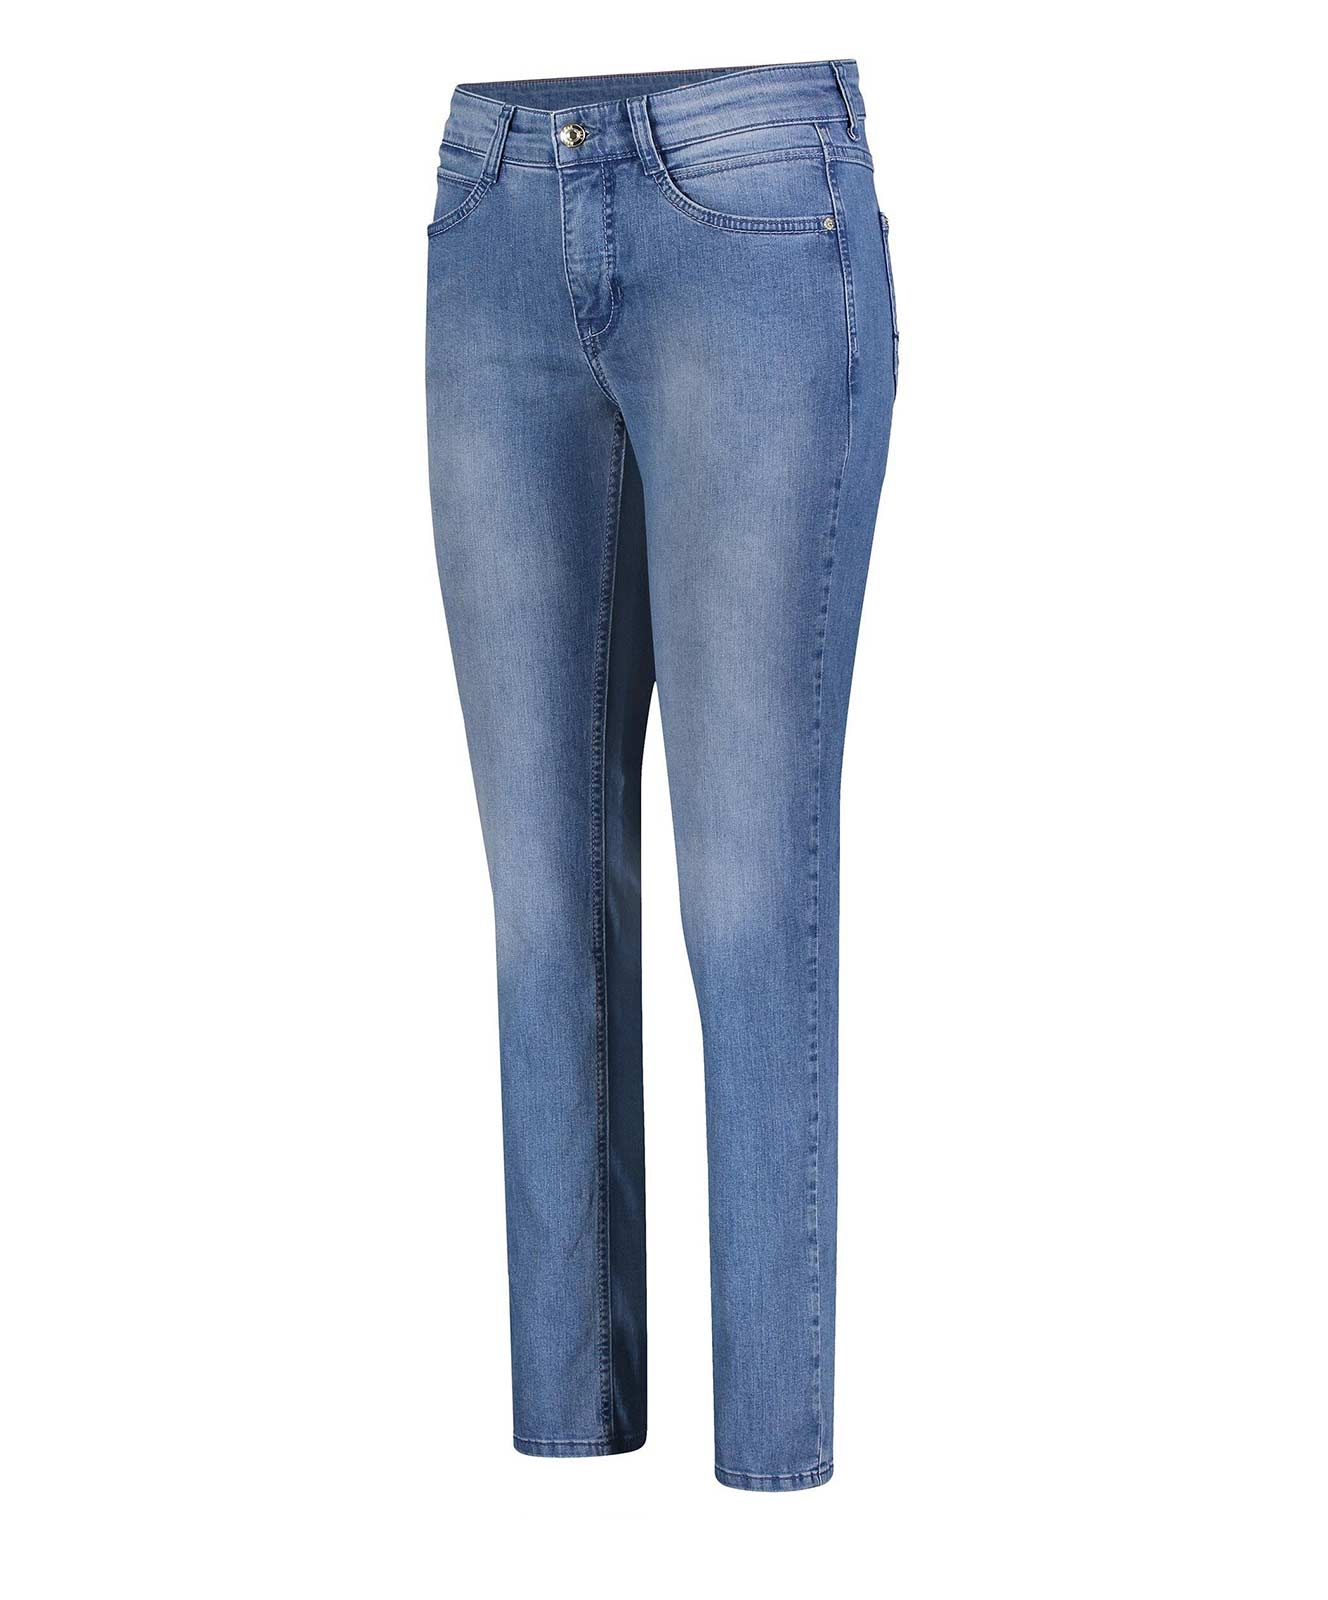 Hosen - MAC Mom Jeans Angela in Clean Light Blue Wash  - Onlineshop Jeans Meile